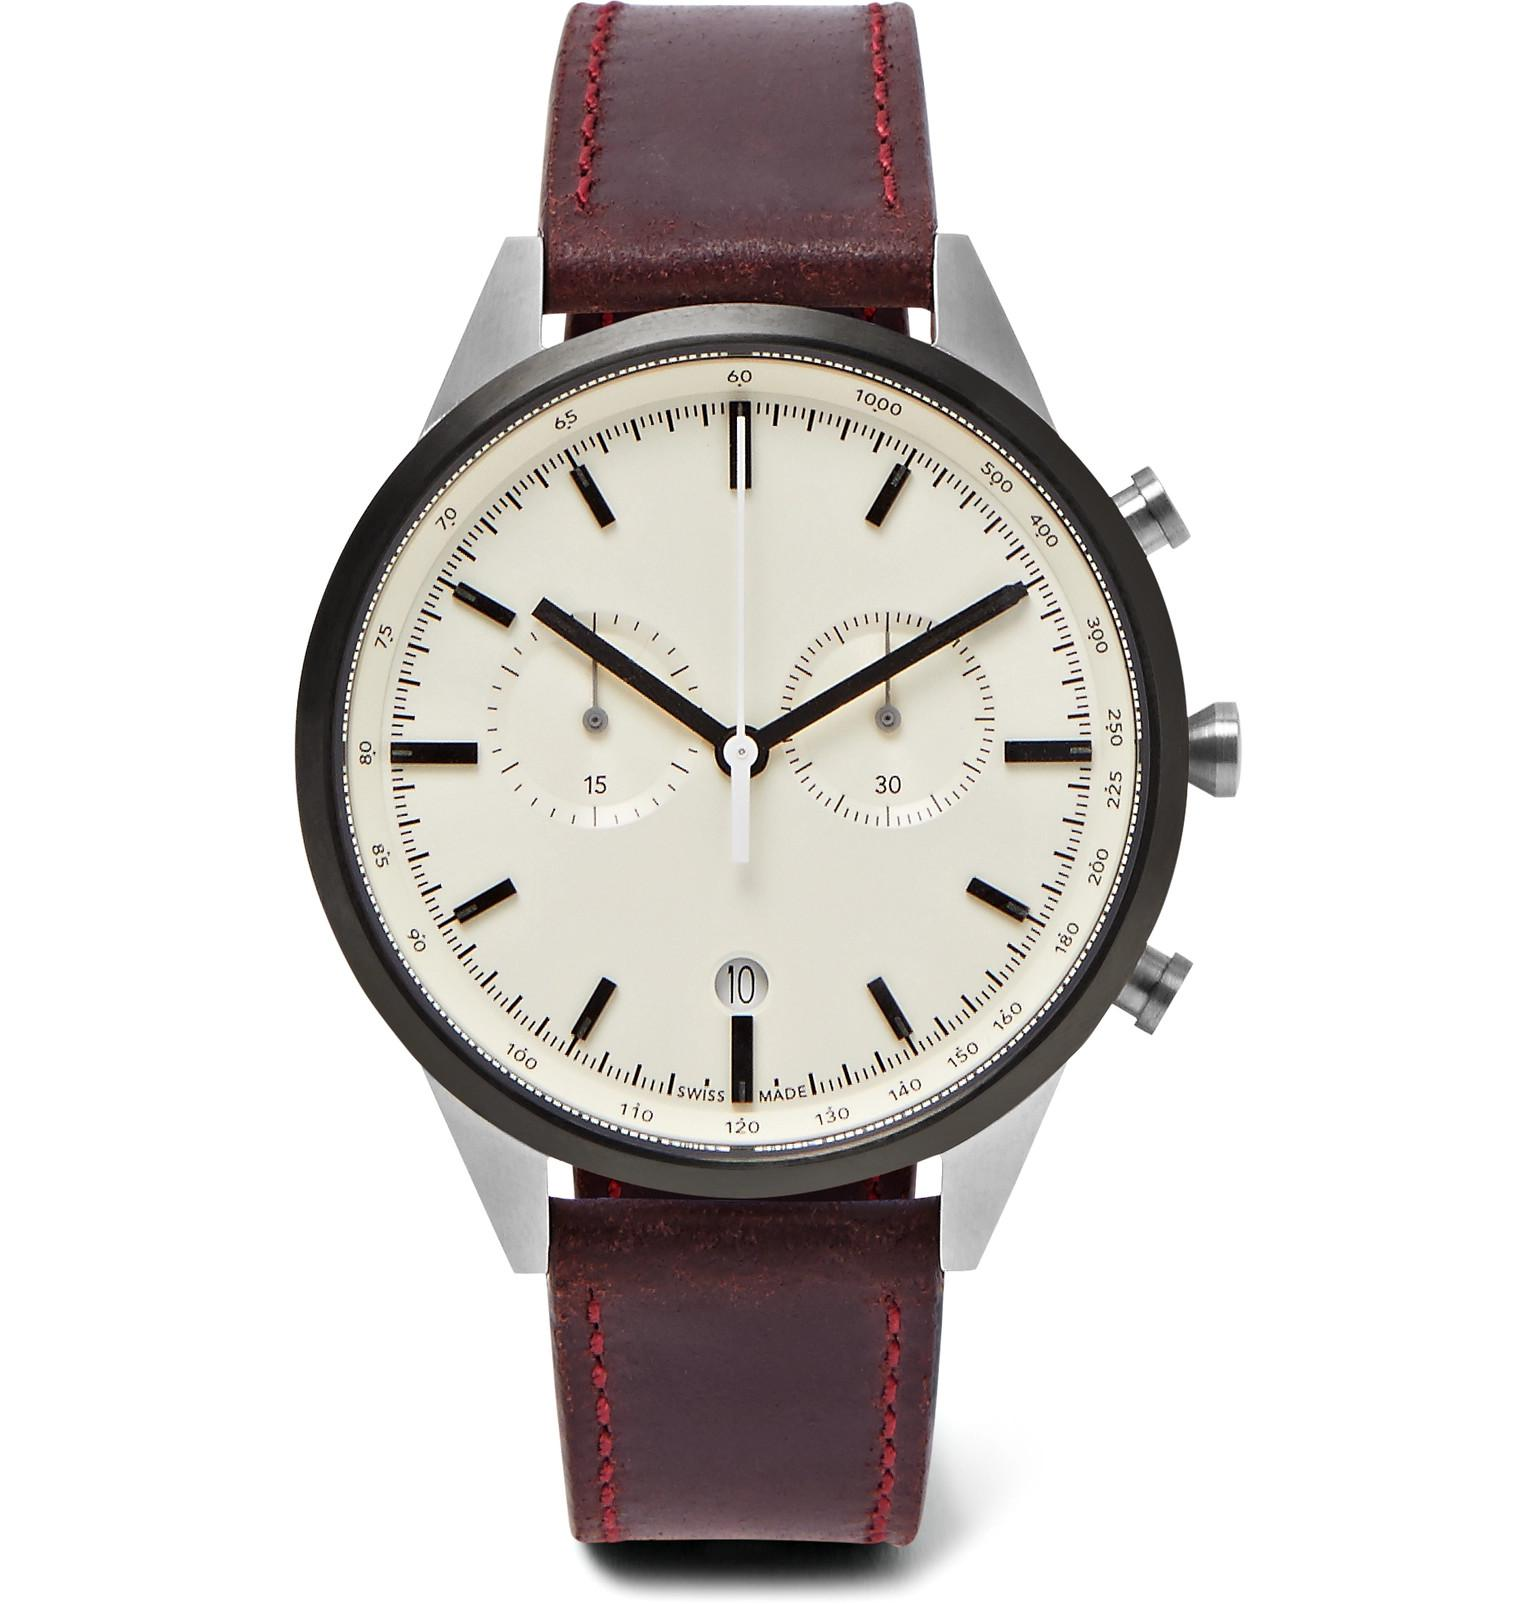 a7881b4f0 Lyst - Uniform Wares C41 Chronograph Pvd-coated Stainless Steel And ...